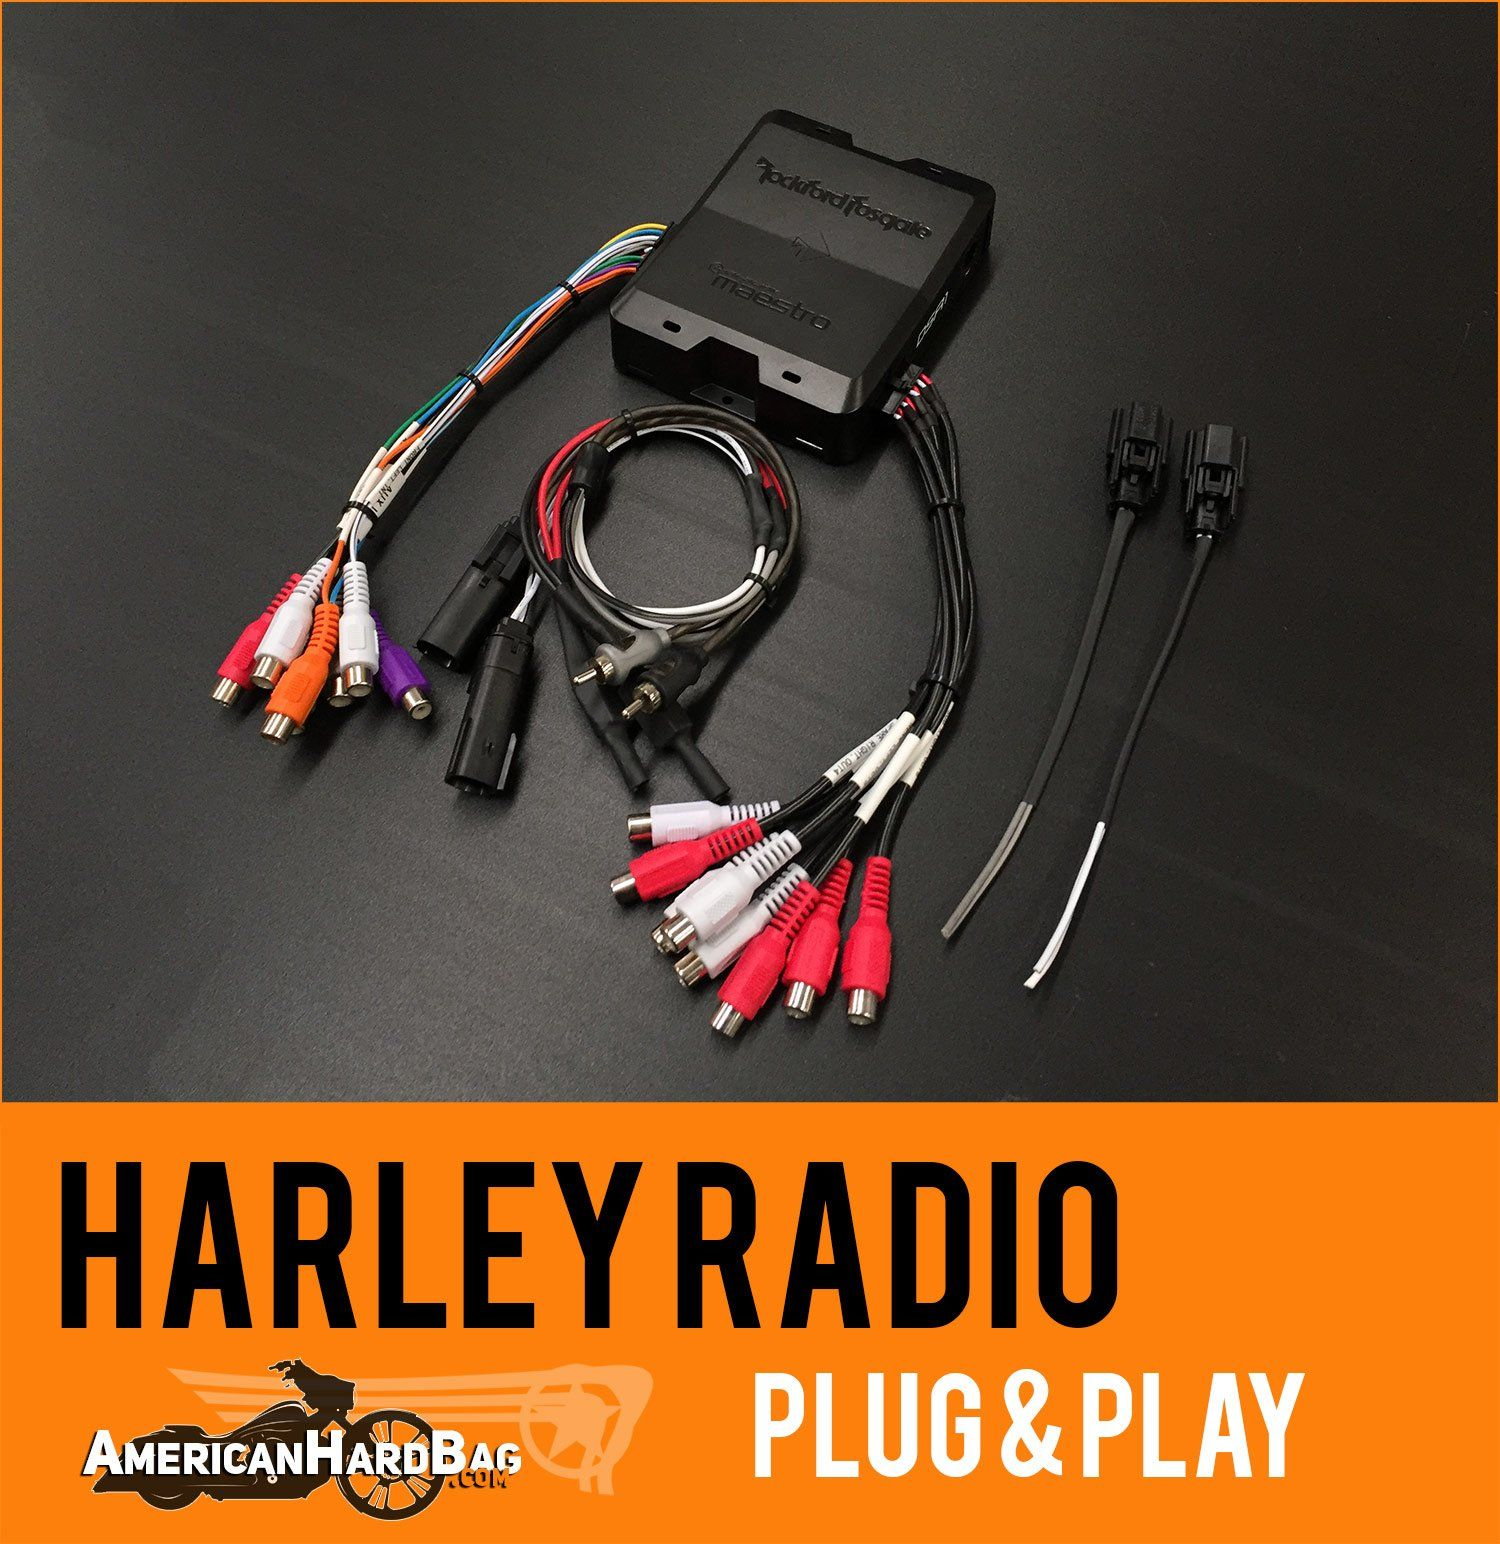 Harley Radio Interface - Equalizer - Rockford Fosgate DSR1